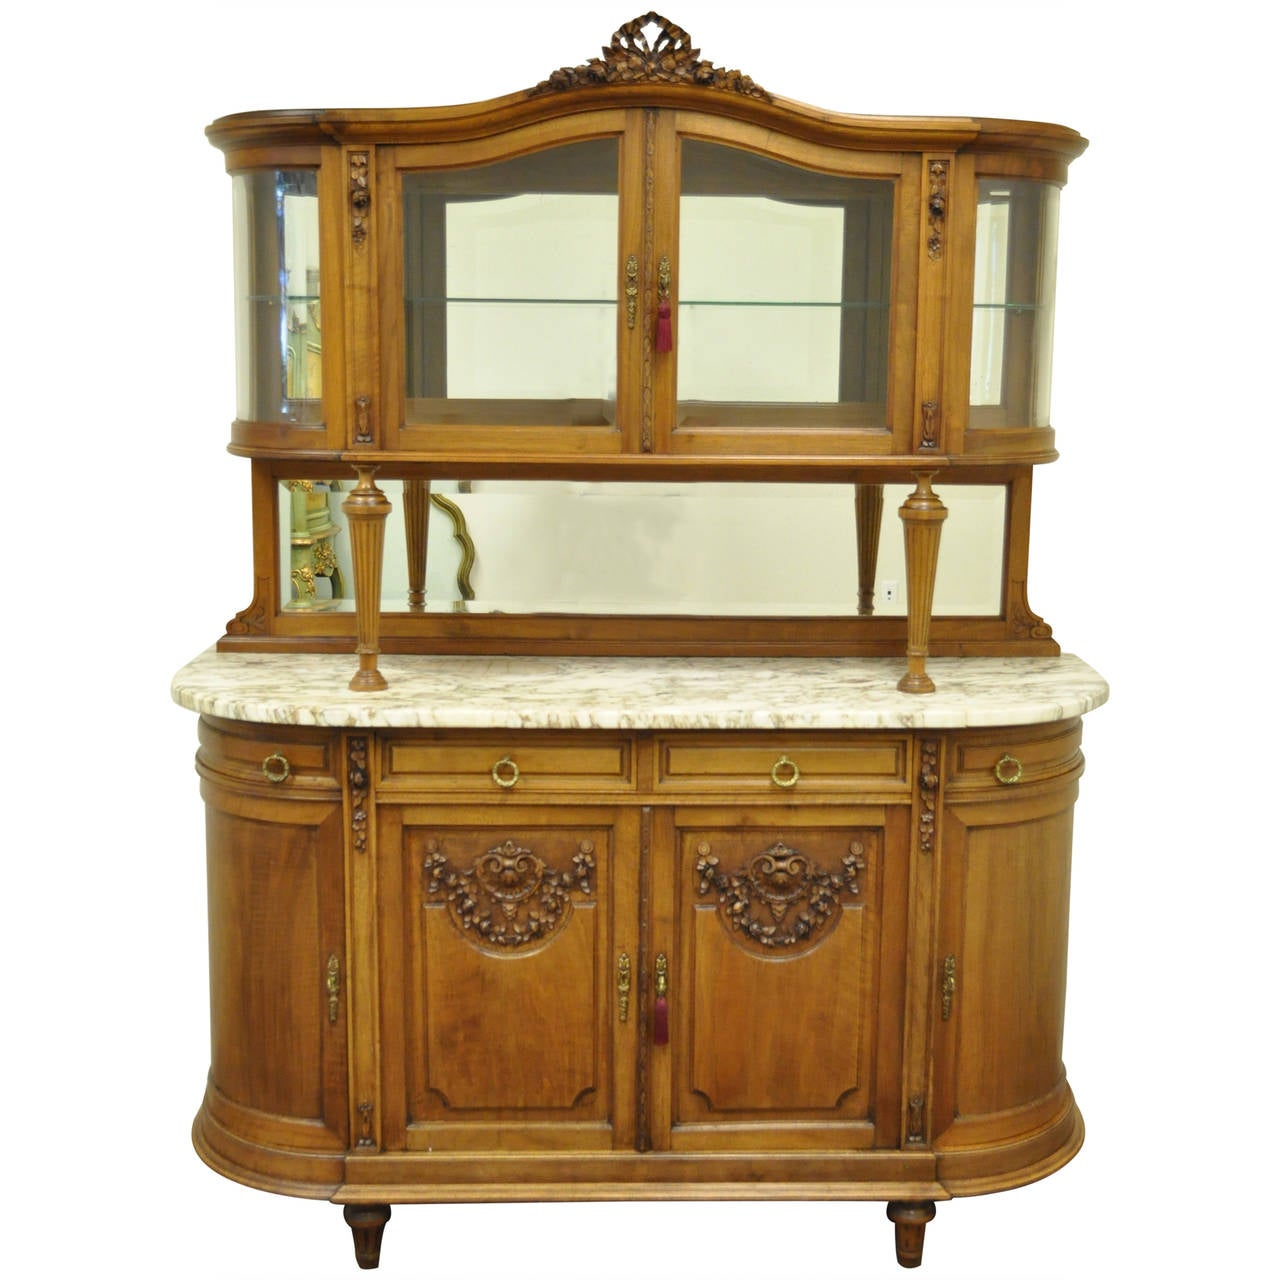 French Louis XVI Style Marble-Top Sideboard or Curio Cabinet, circa 1900  For Sale - French Louis XVI Style Marble-Top Sideboard Or Curio Cabinet, Circa